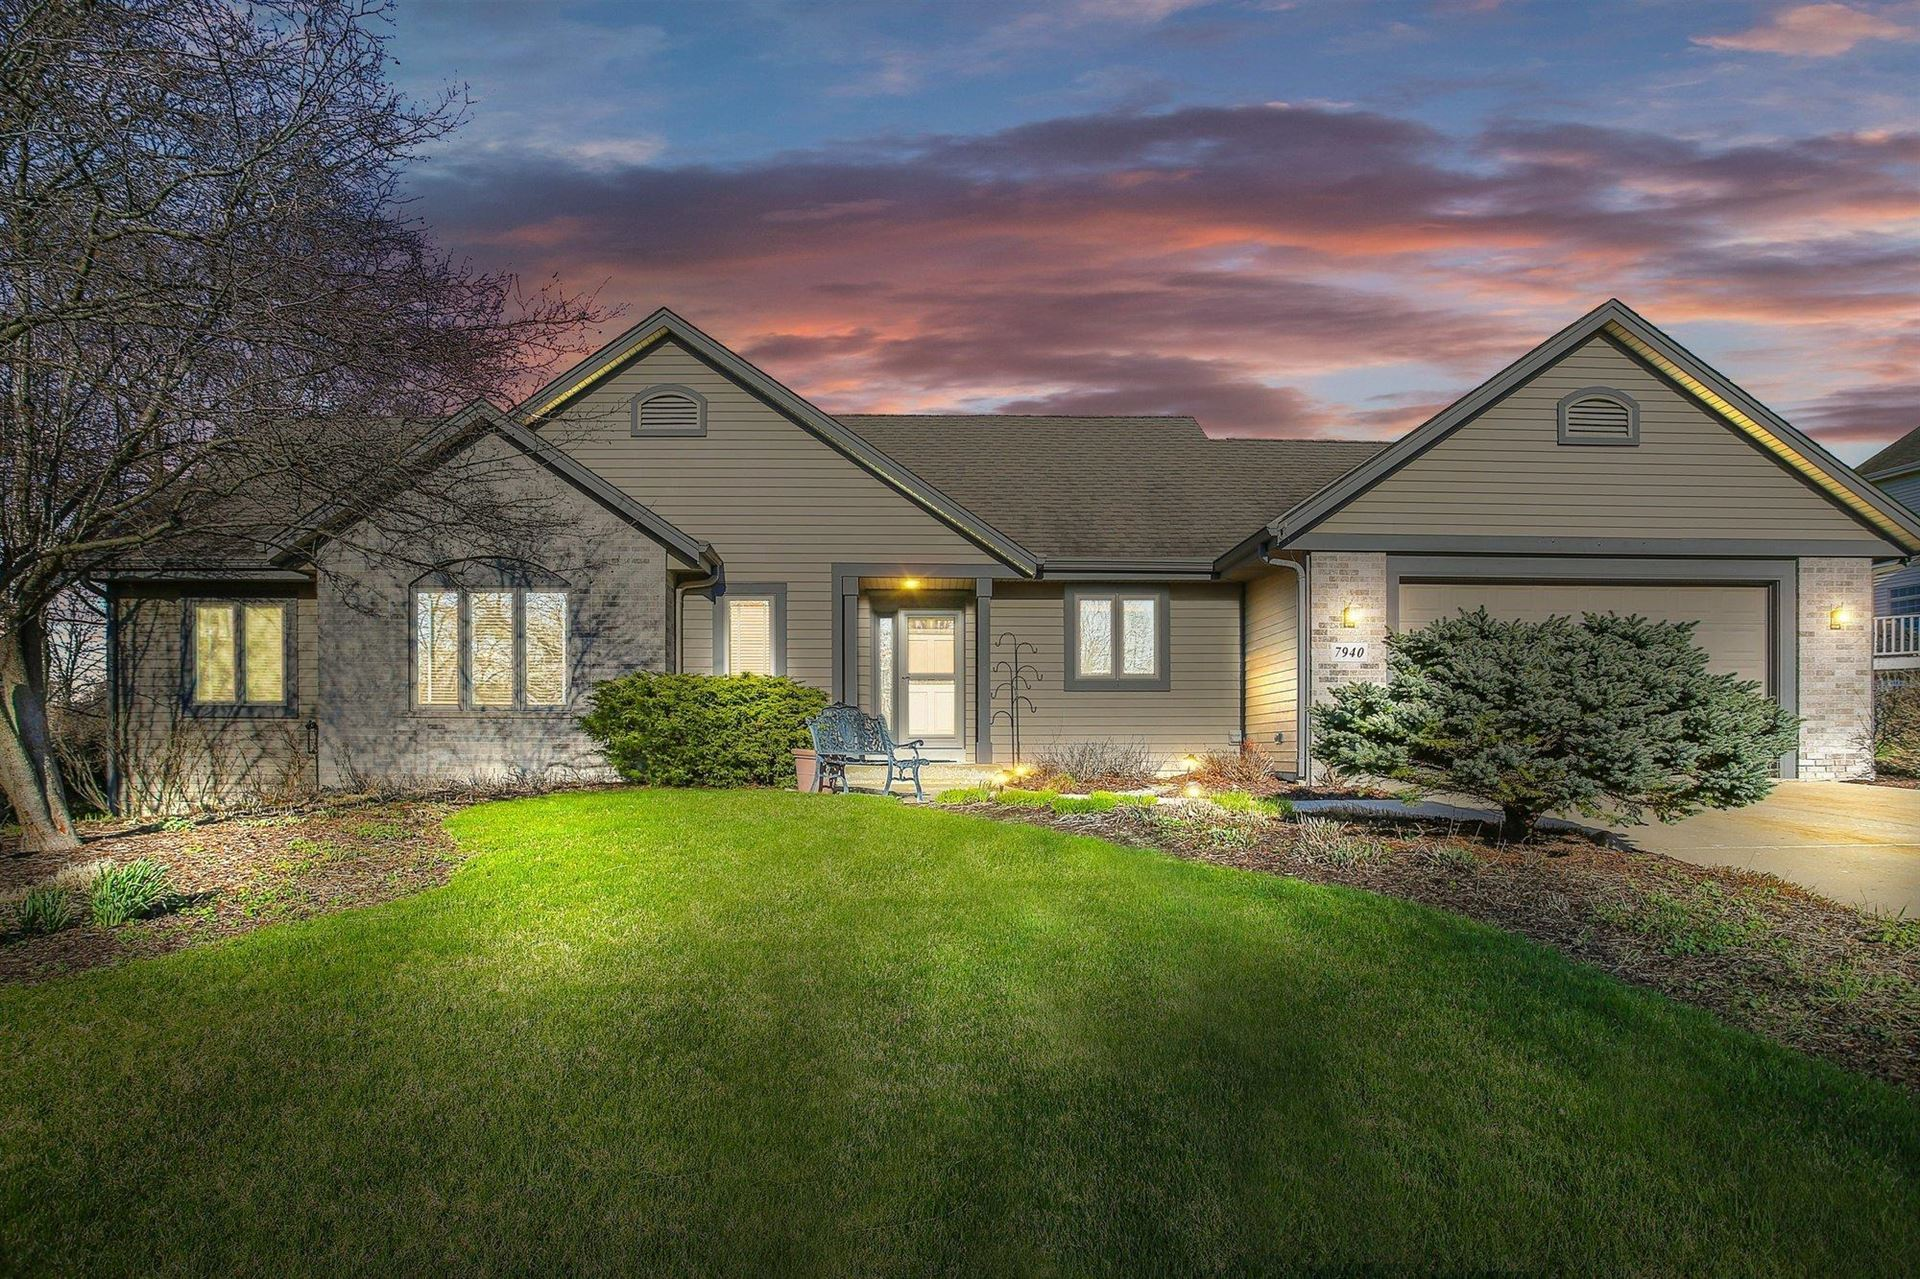 7940 S Forest Meadows Dr, Franklin, WI 53132 - #: 1684935